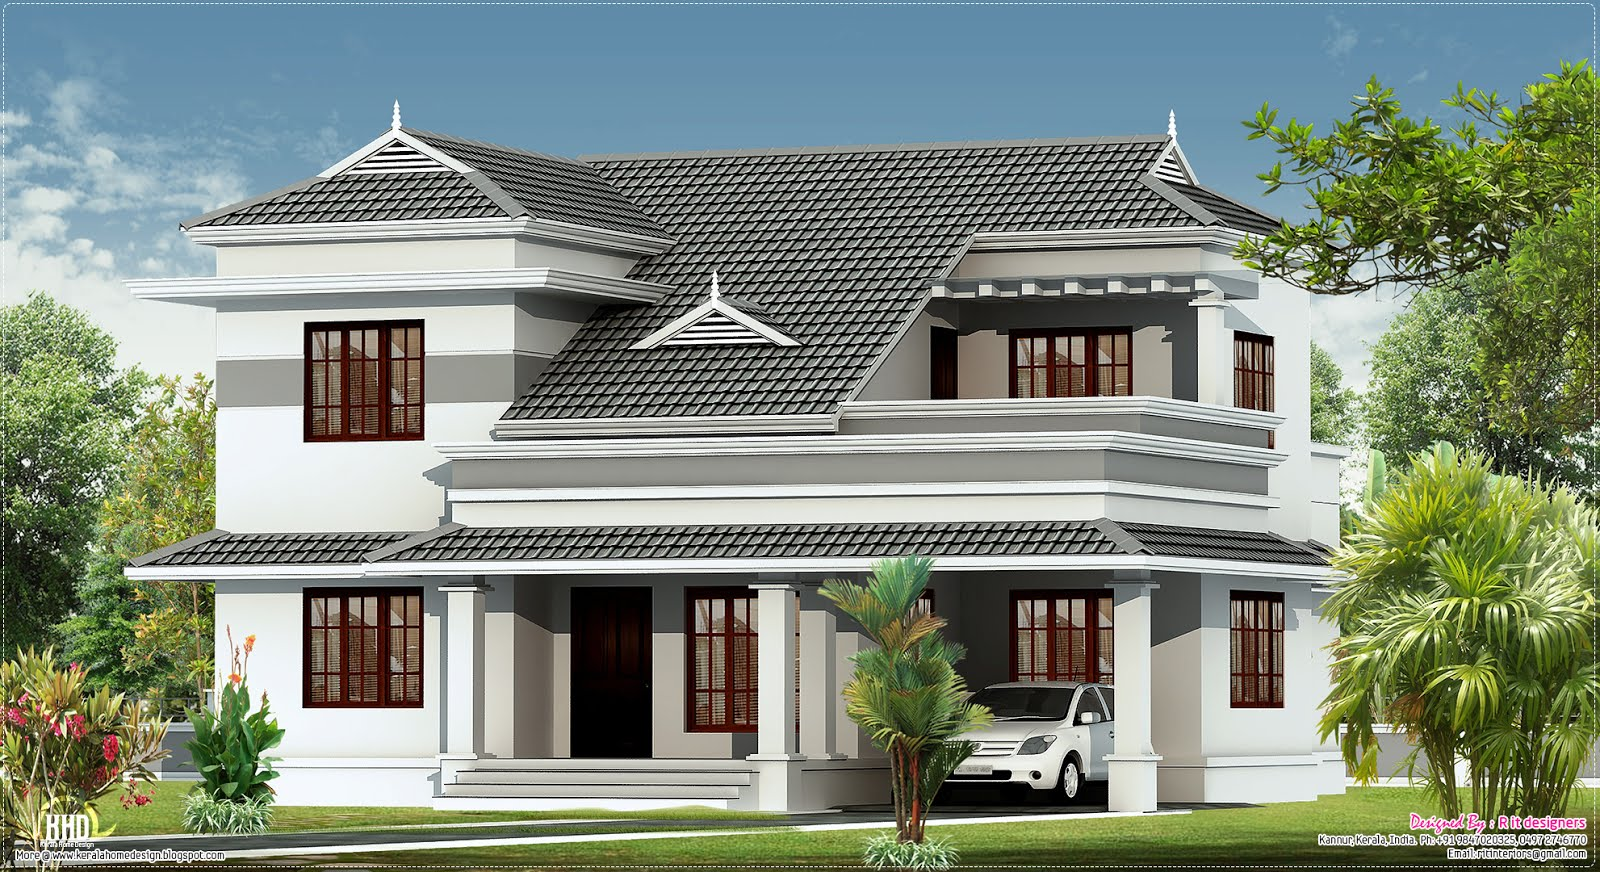 New villa design in 2250 kerala home design and for New house plans